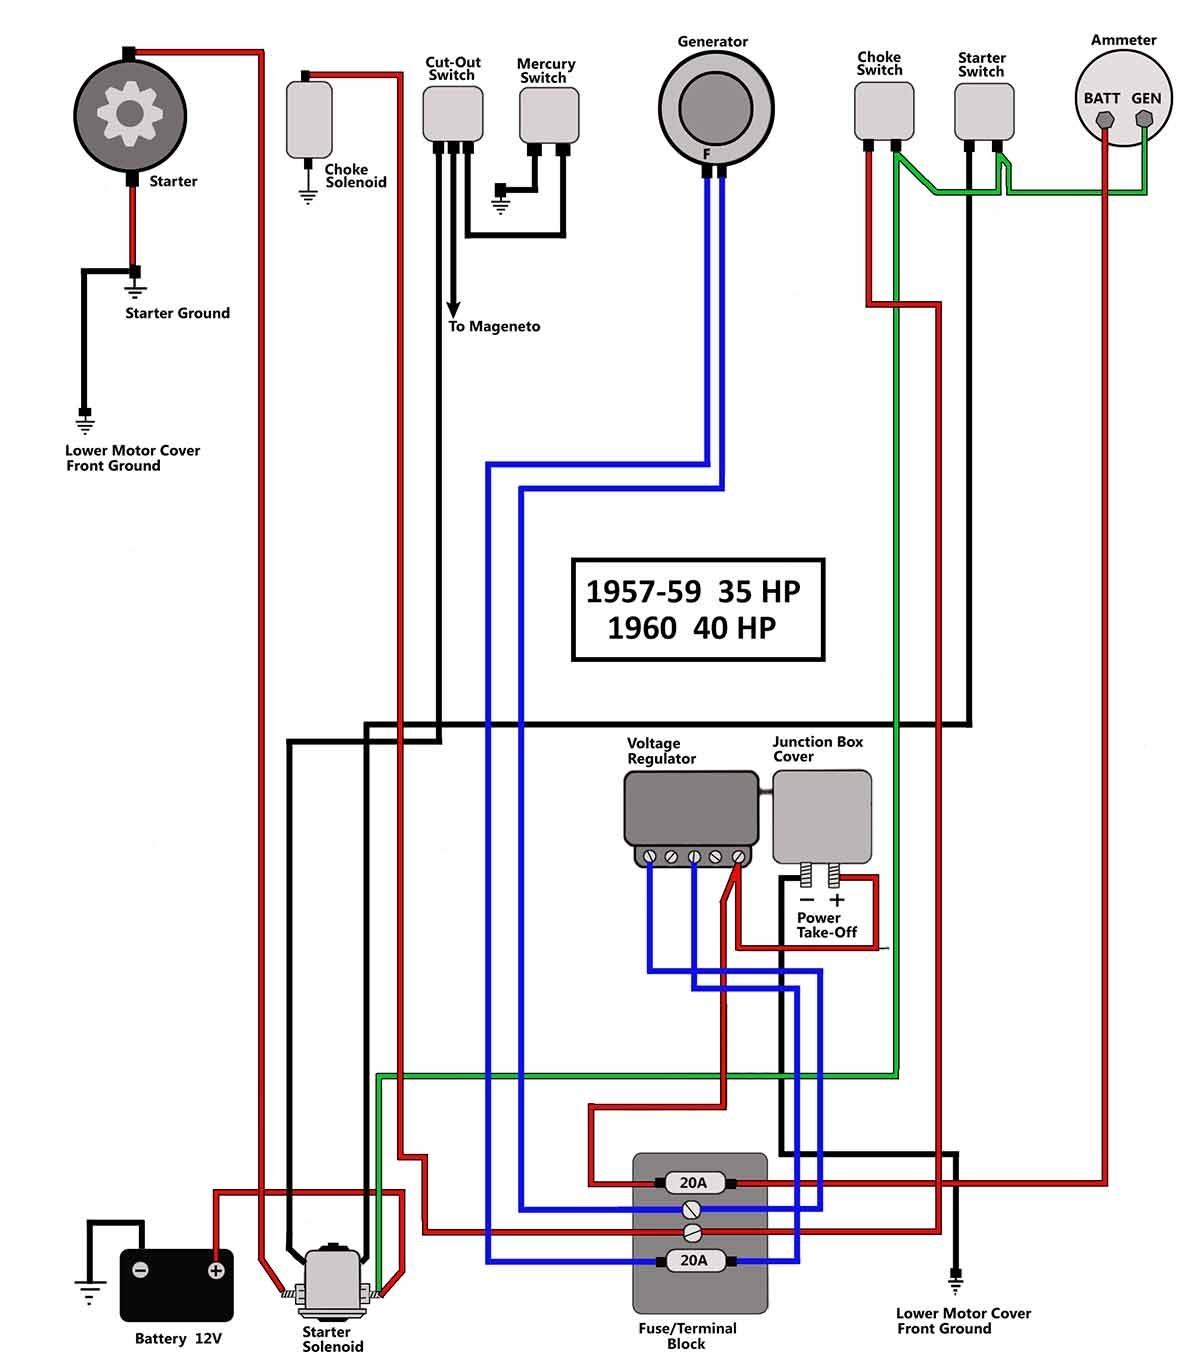 ammeter wiring diagram omc 172995 auto electrical wiring diagram u2022 rh 6weeks co uk